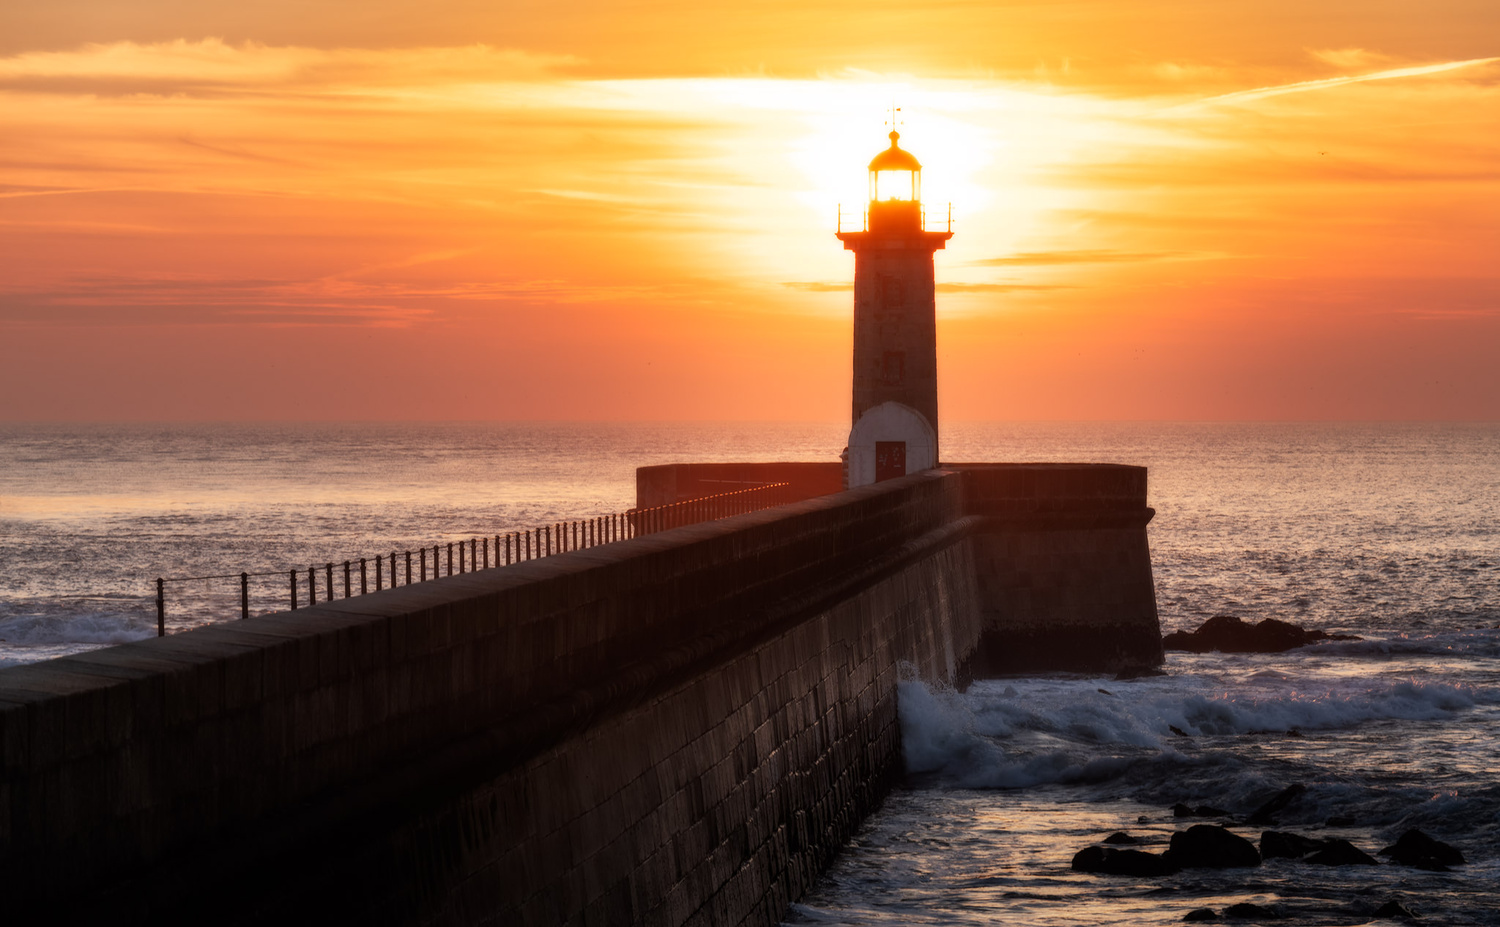 The Felgueiras Lighthouse at sunset | Porto, Portugal by Nico Trinkhaus